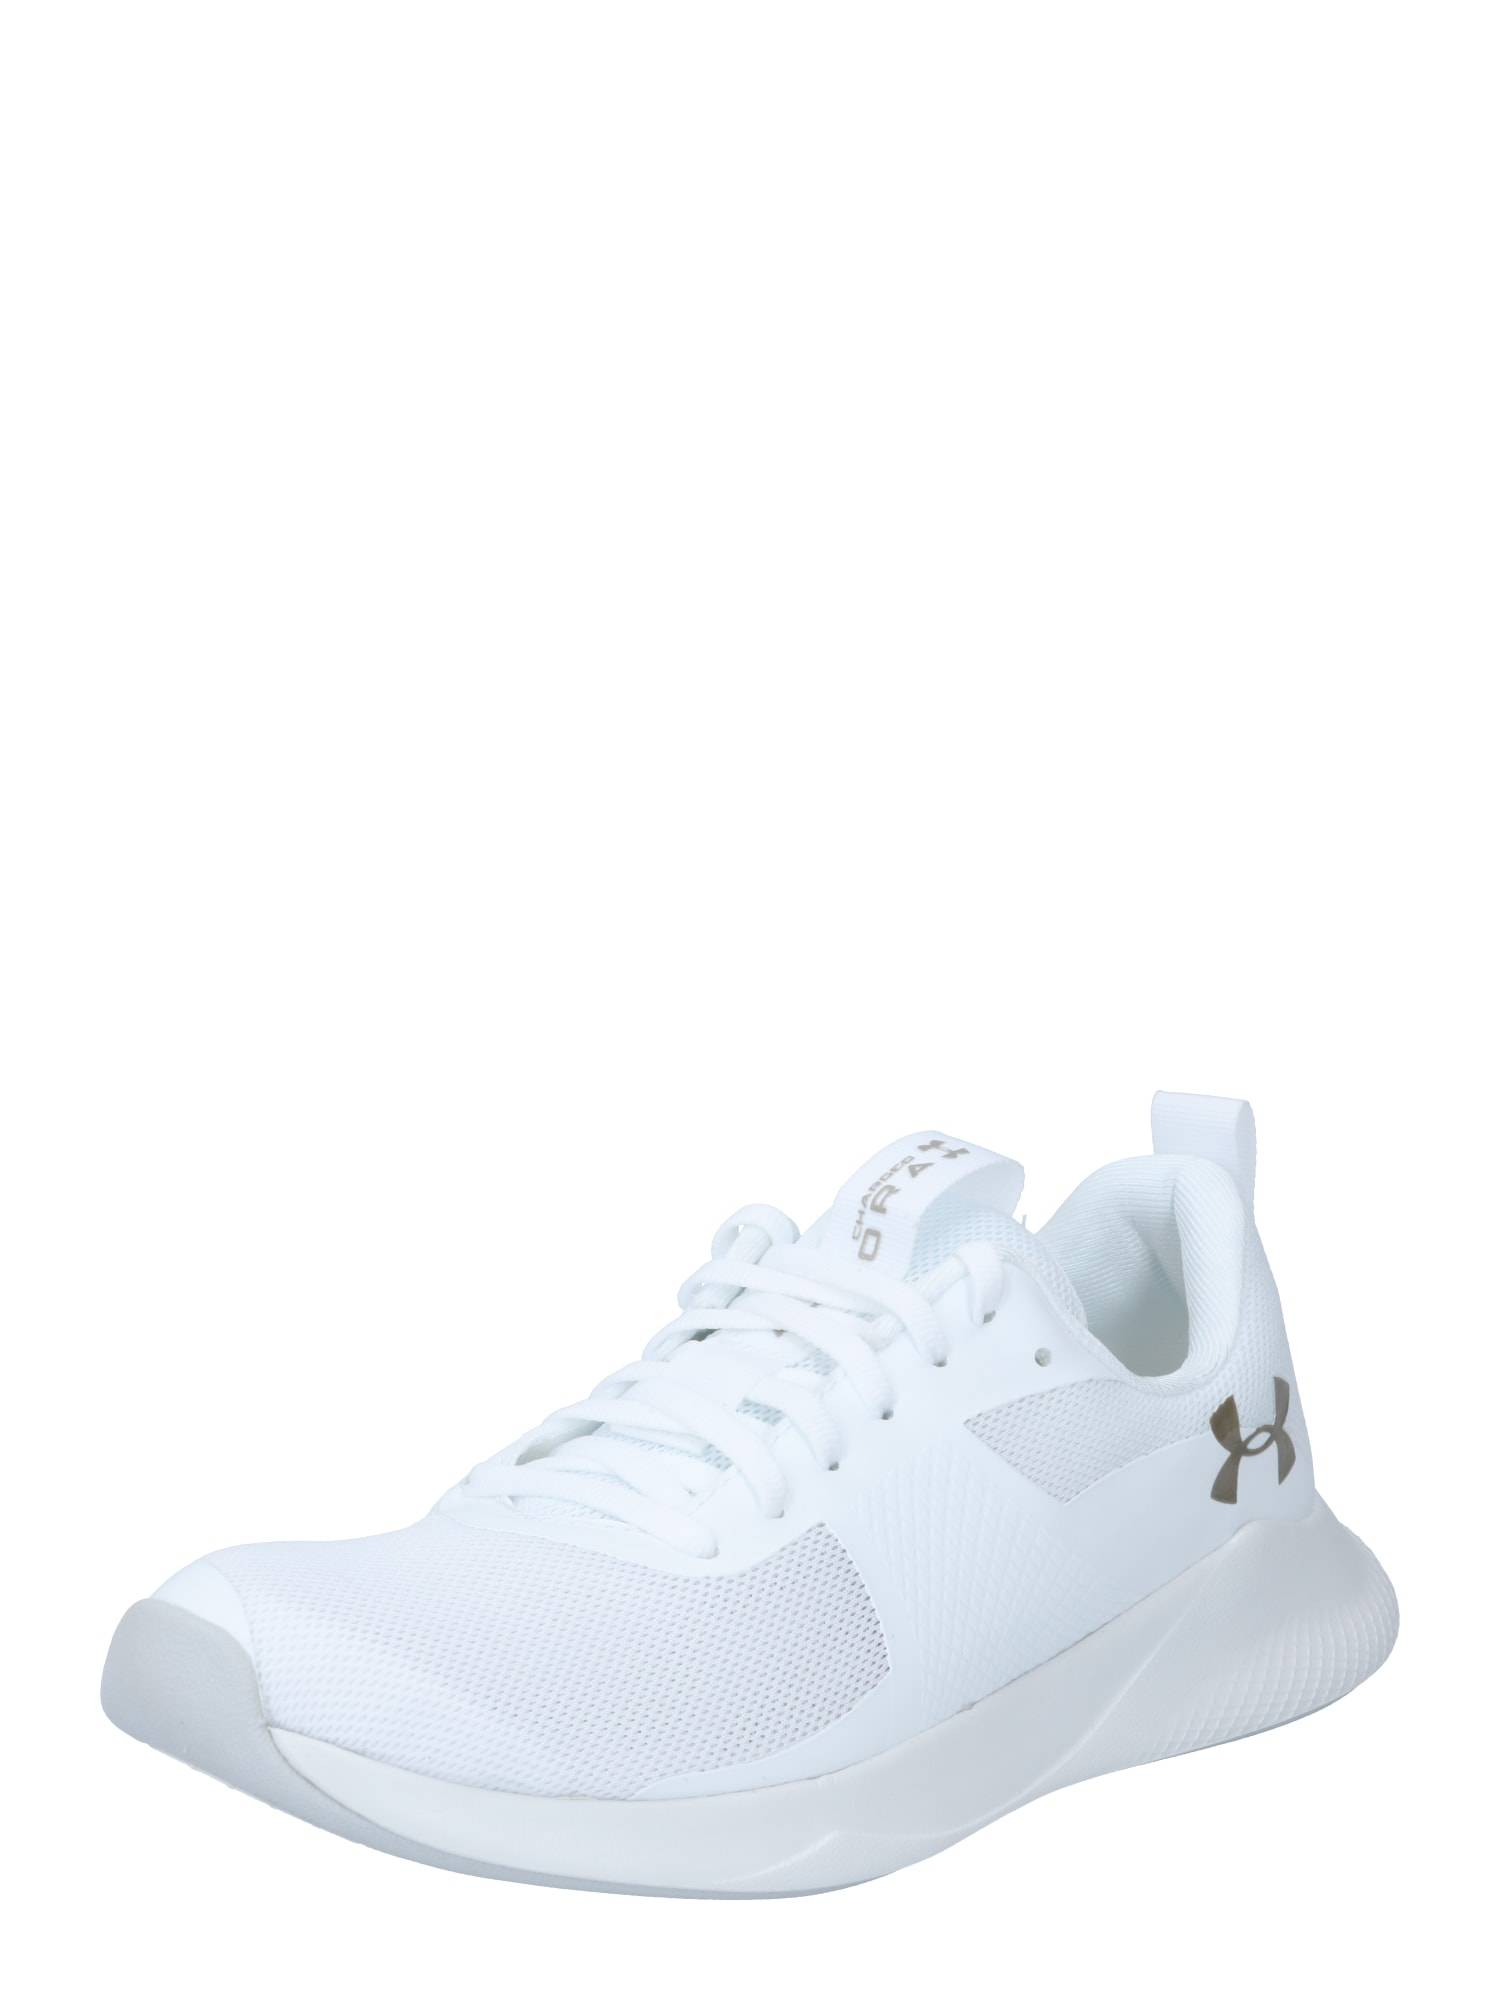 UNDER ARMOUR Chaussure de sport 'UA W Charged Aurora'  - Blanc - Taille: 6.5 - female